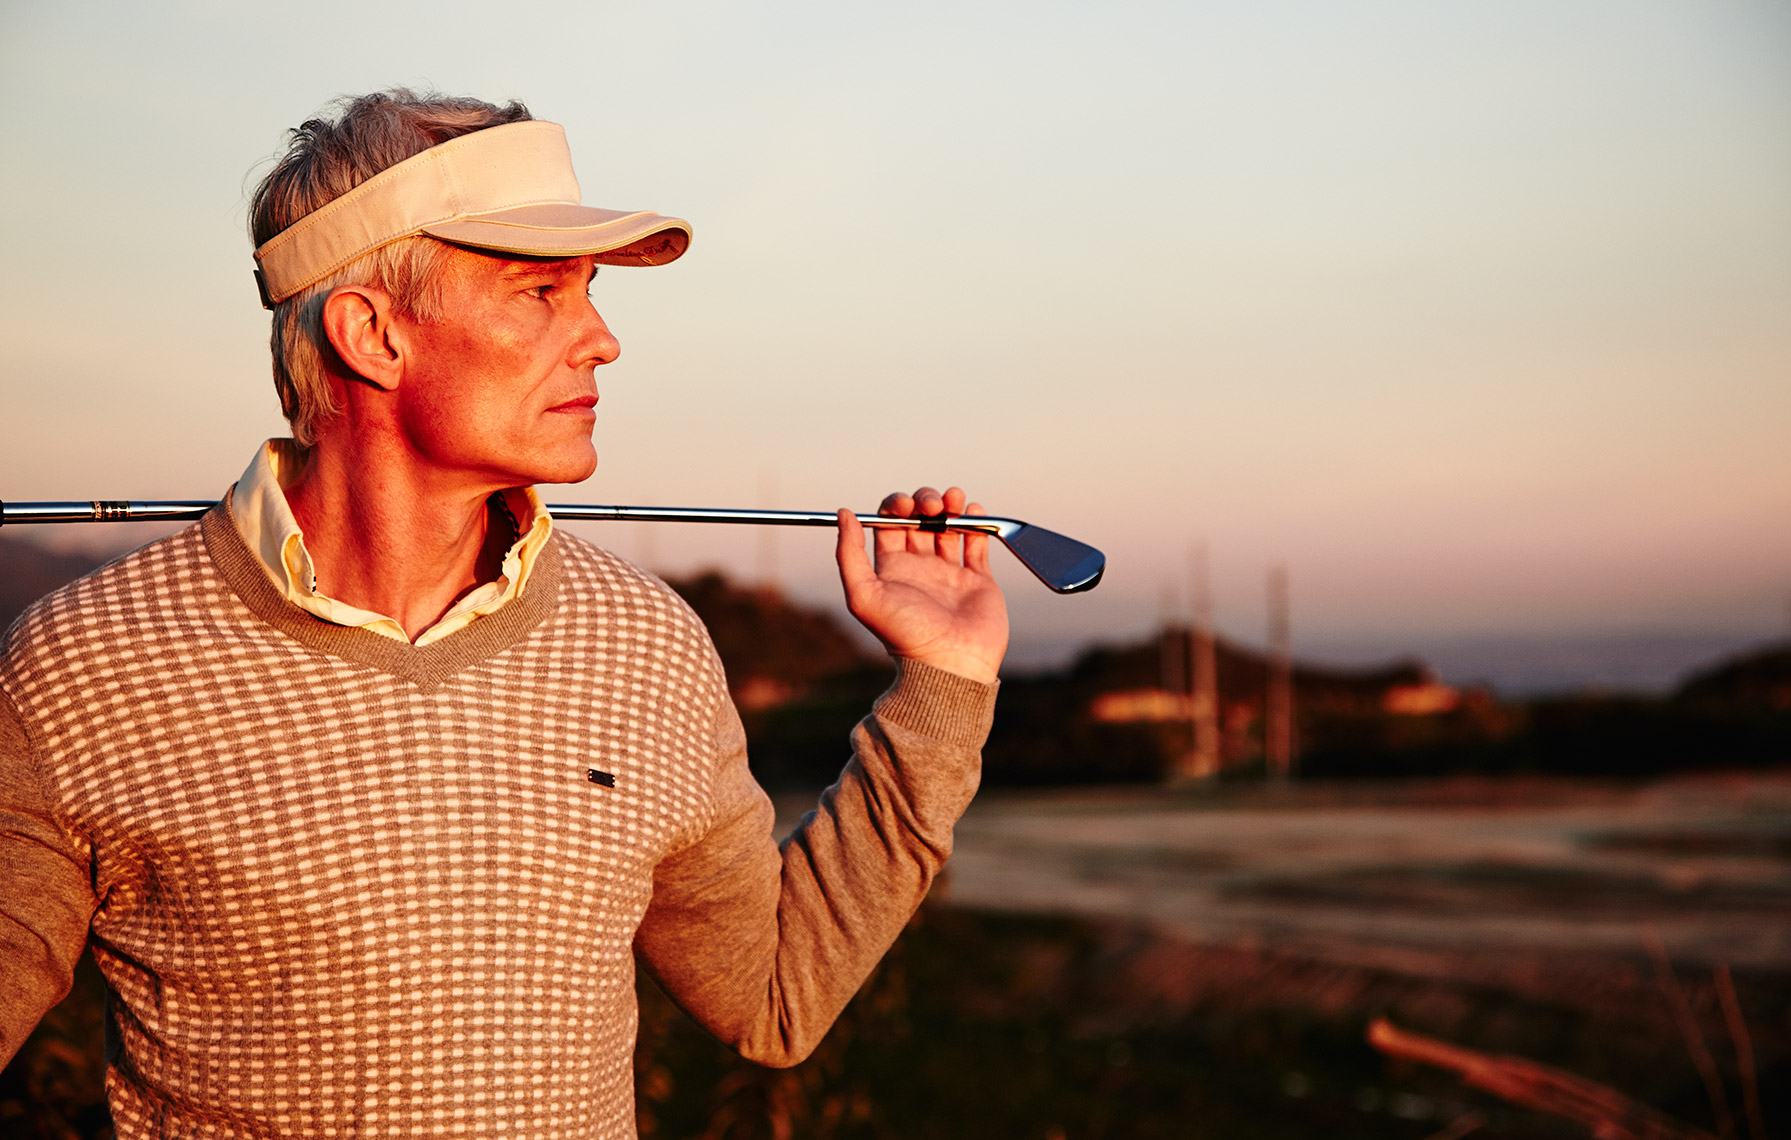 Golf-sunset-portrait.jpg